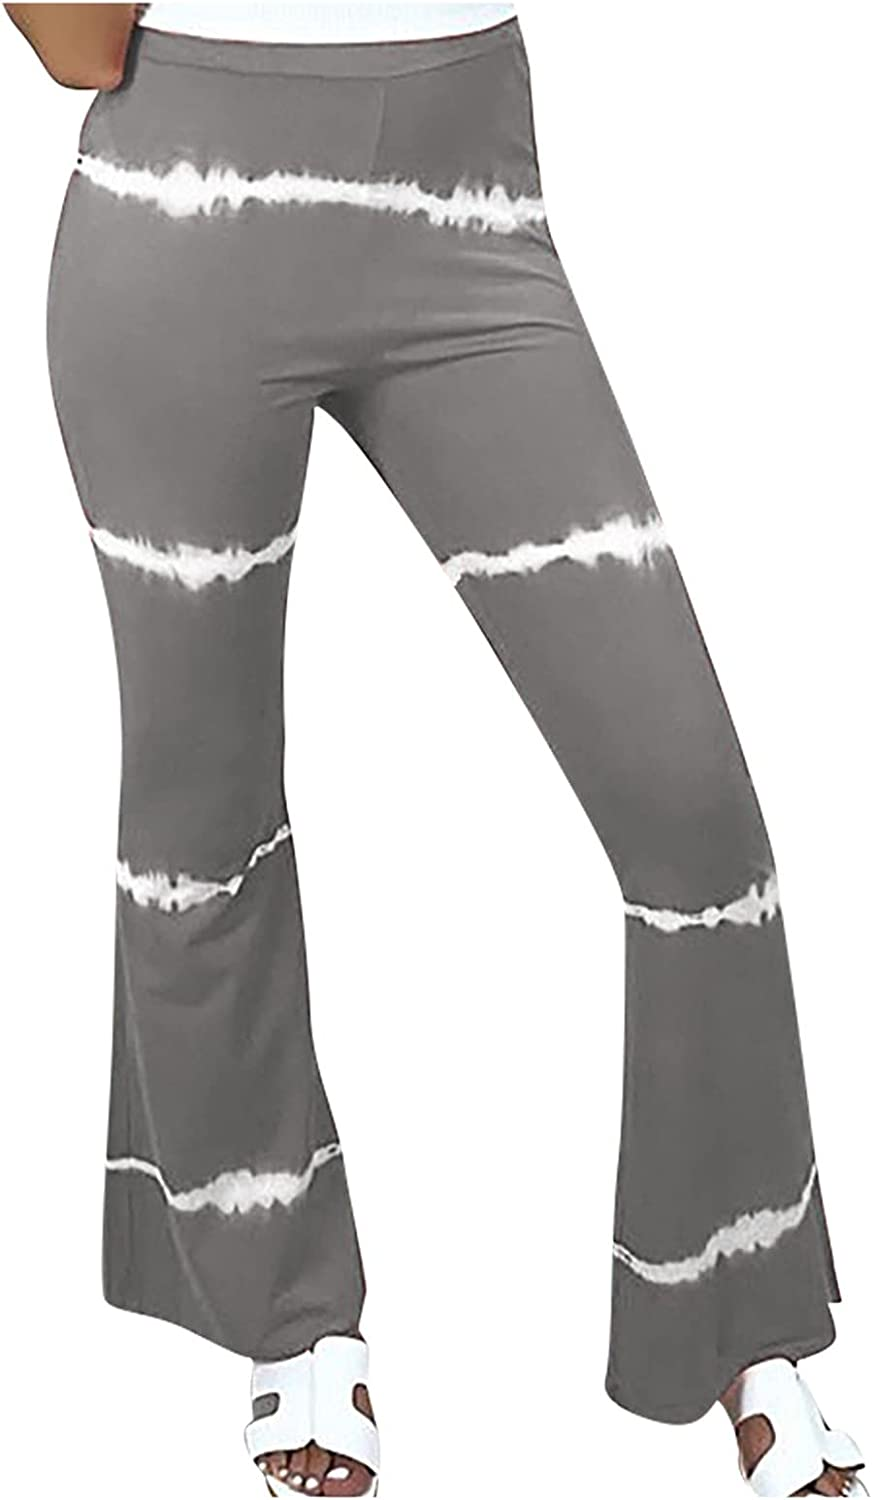 VonVonCo Flare Pants for Women Casual Elastic Girdle Waist Wide Leg Pants Trousers Stretch Printed Horn Gray XX-Large